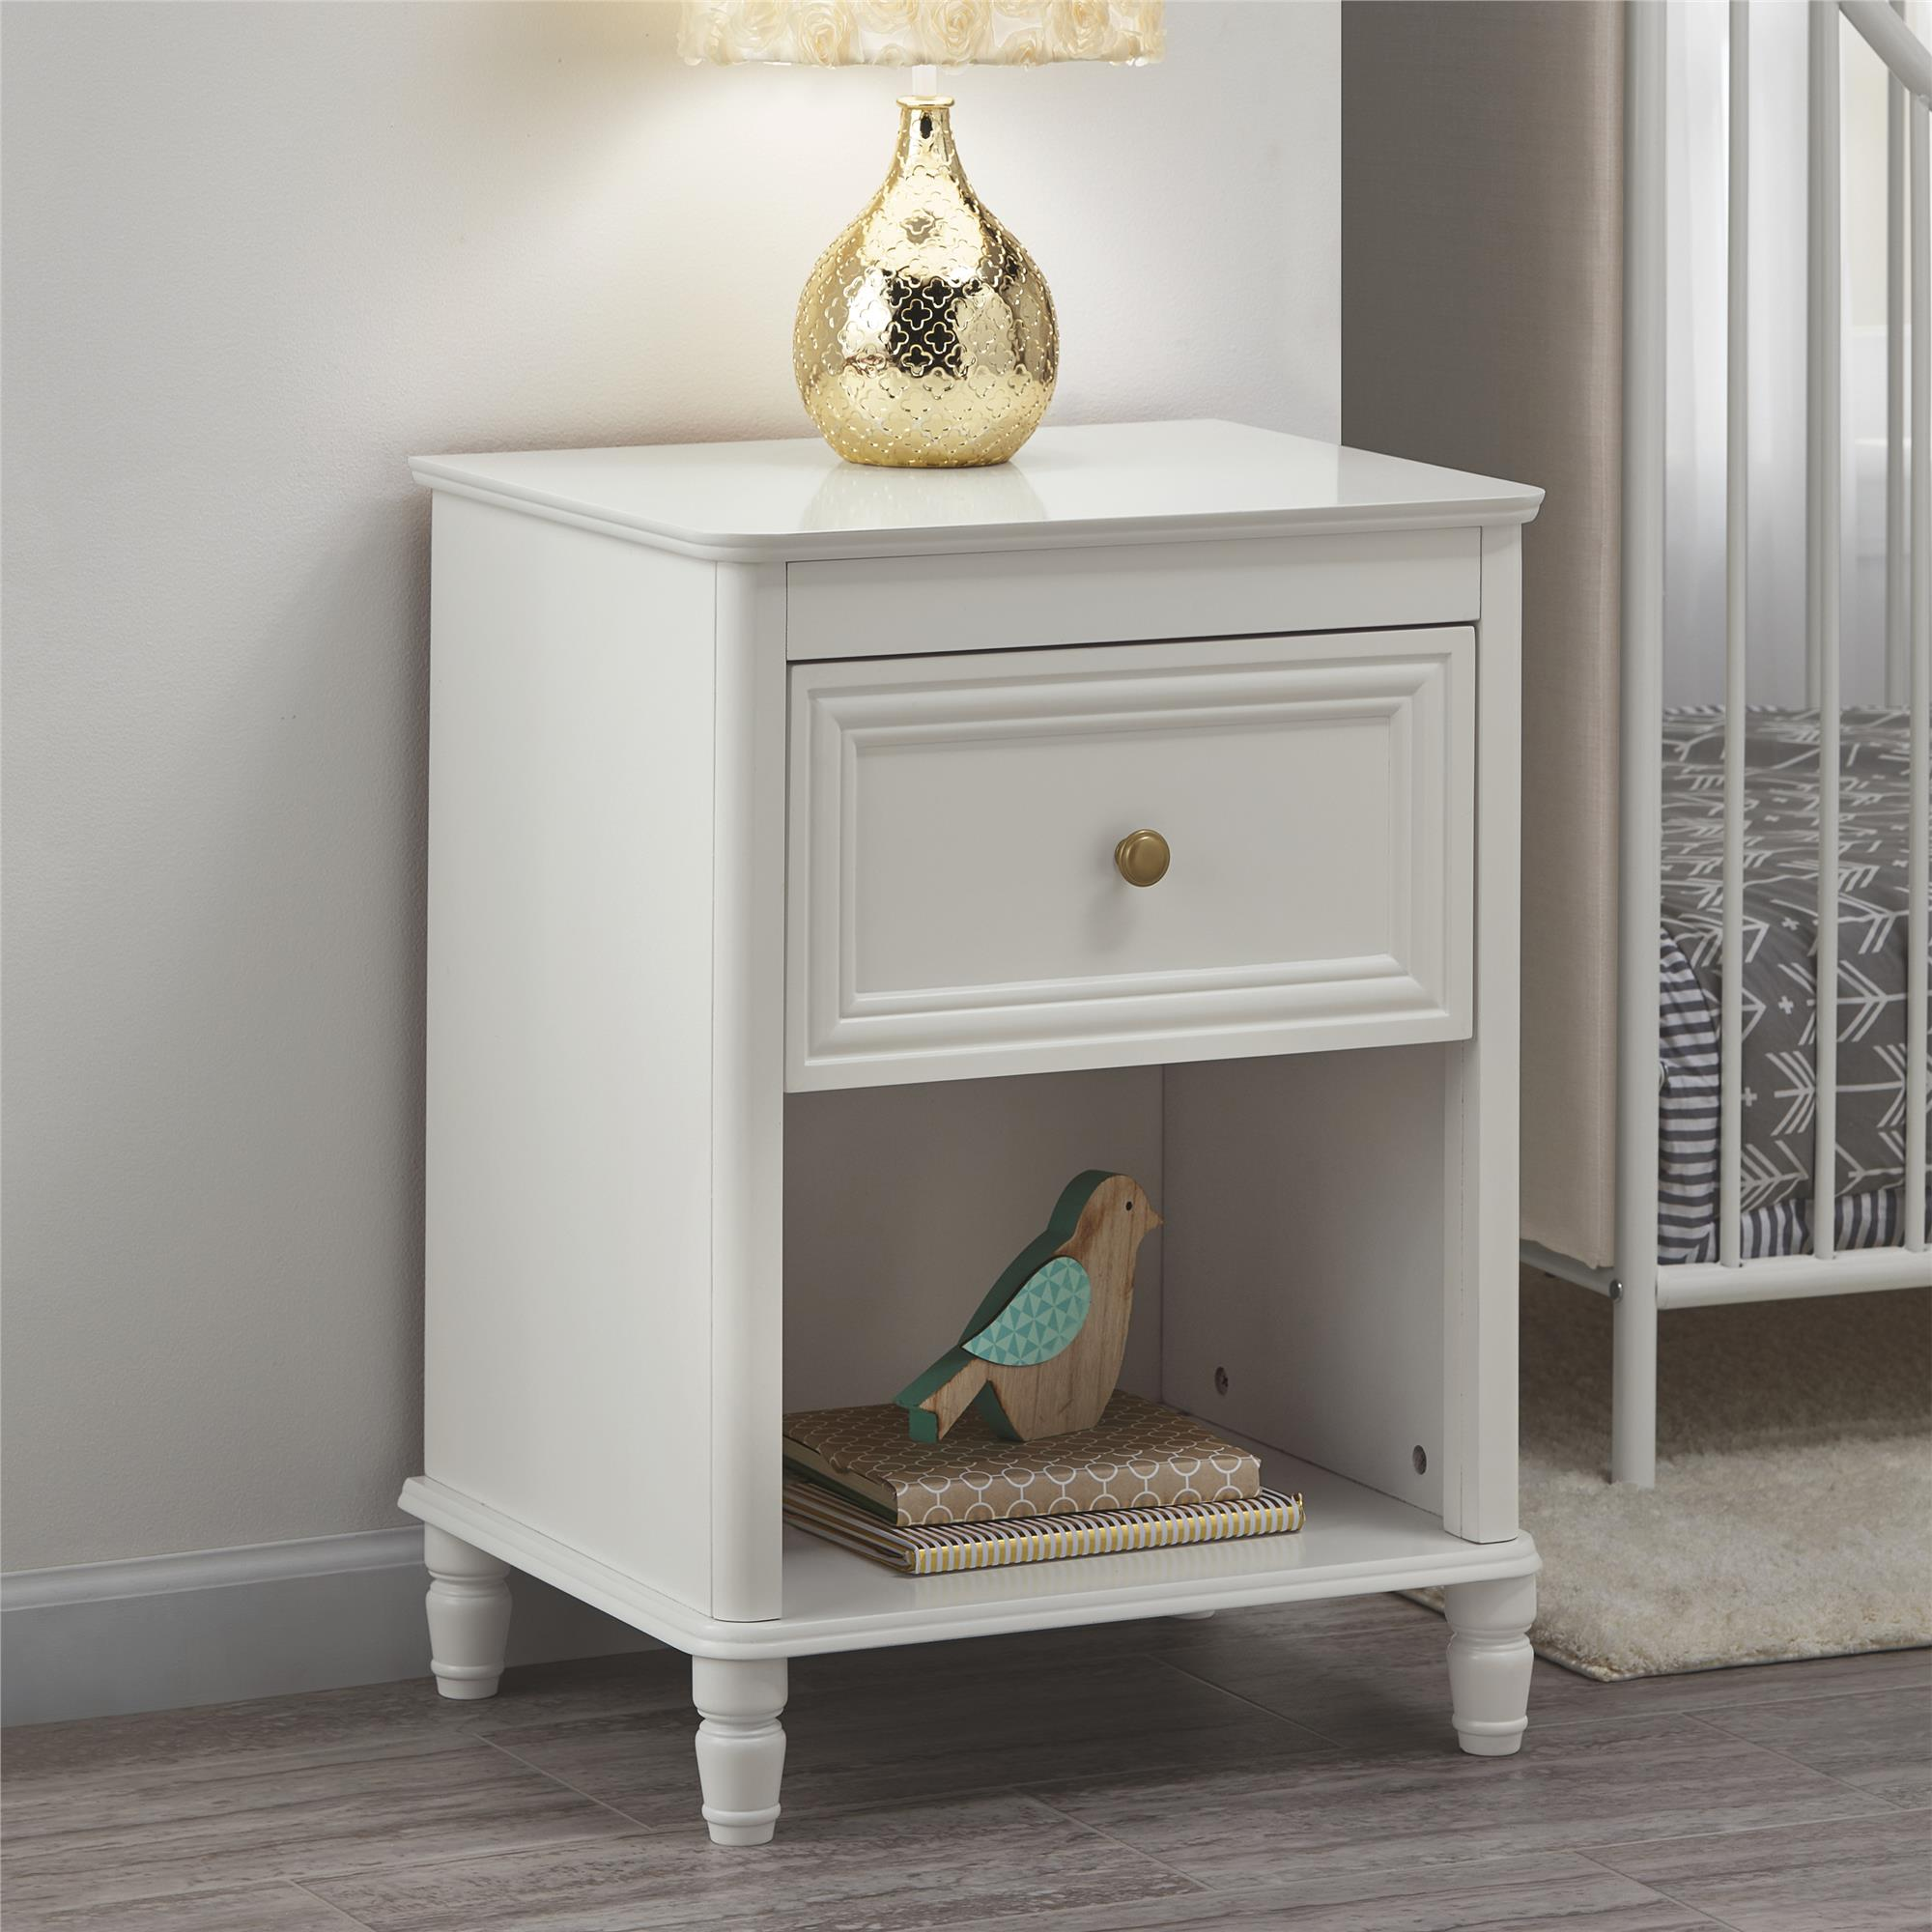 Little Seeds Piper Nightstand, Cream